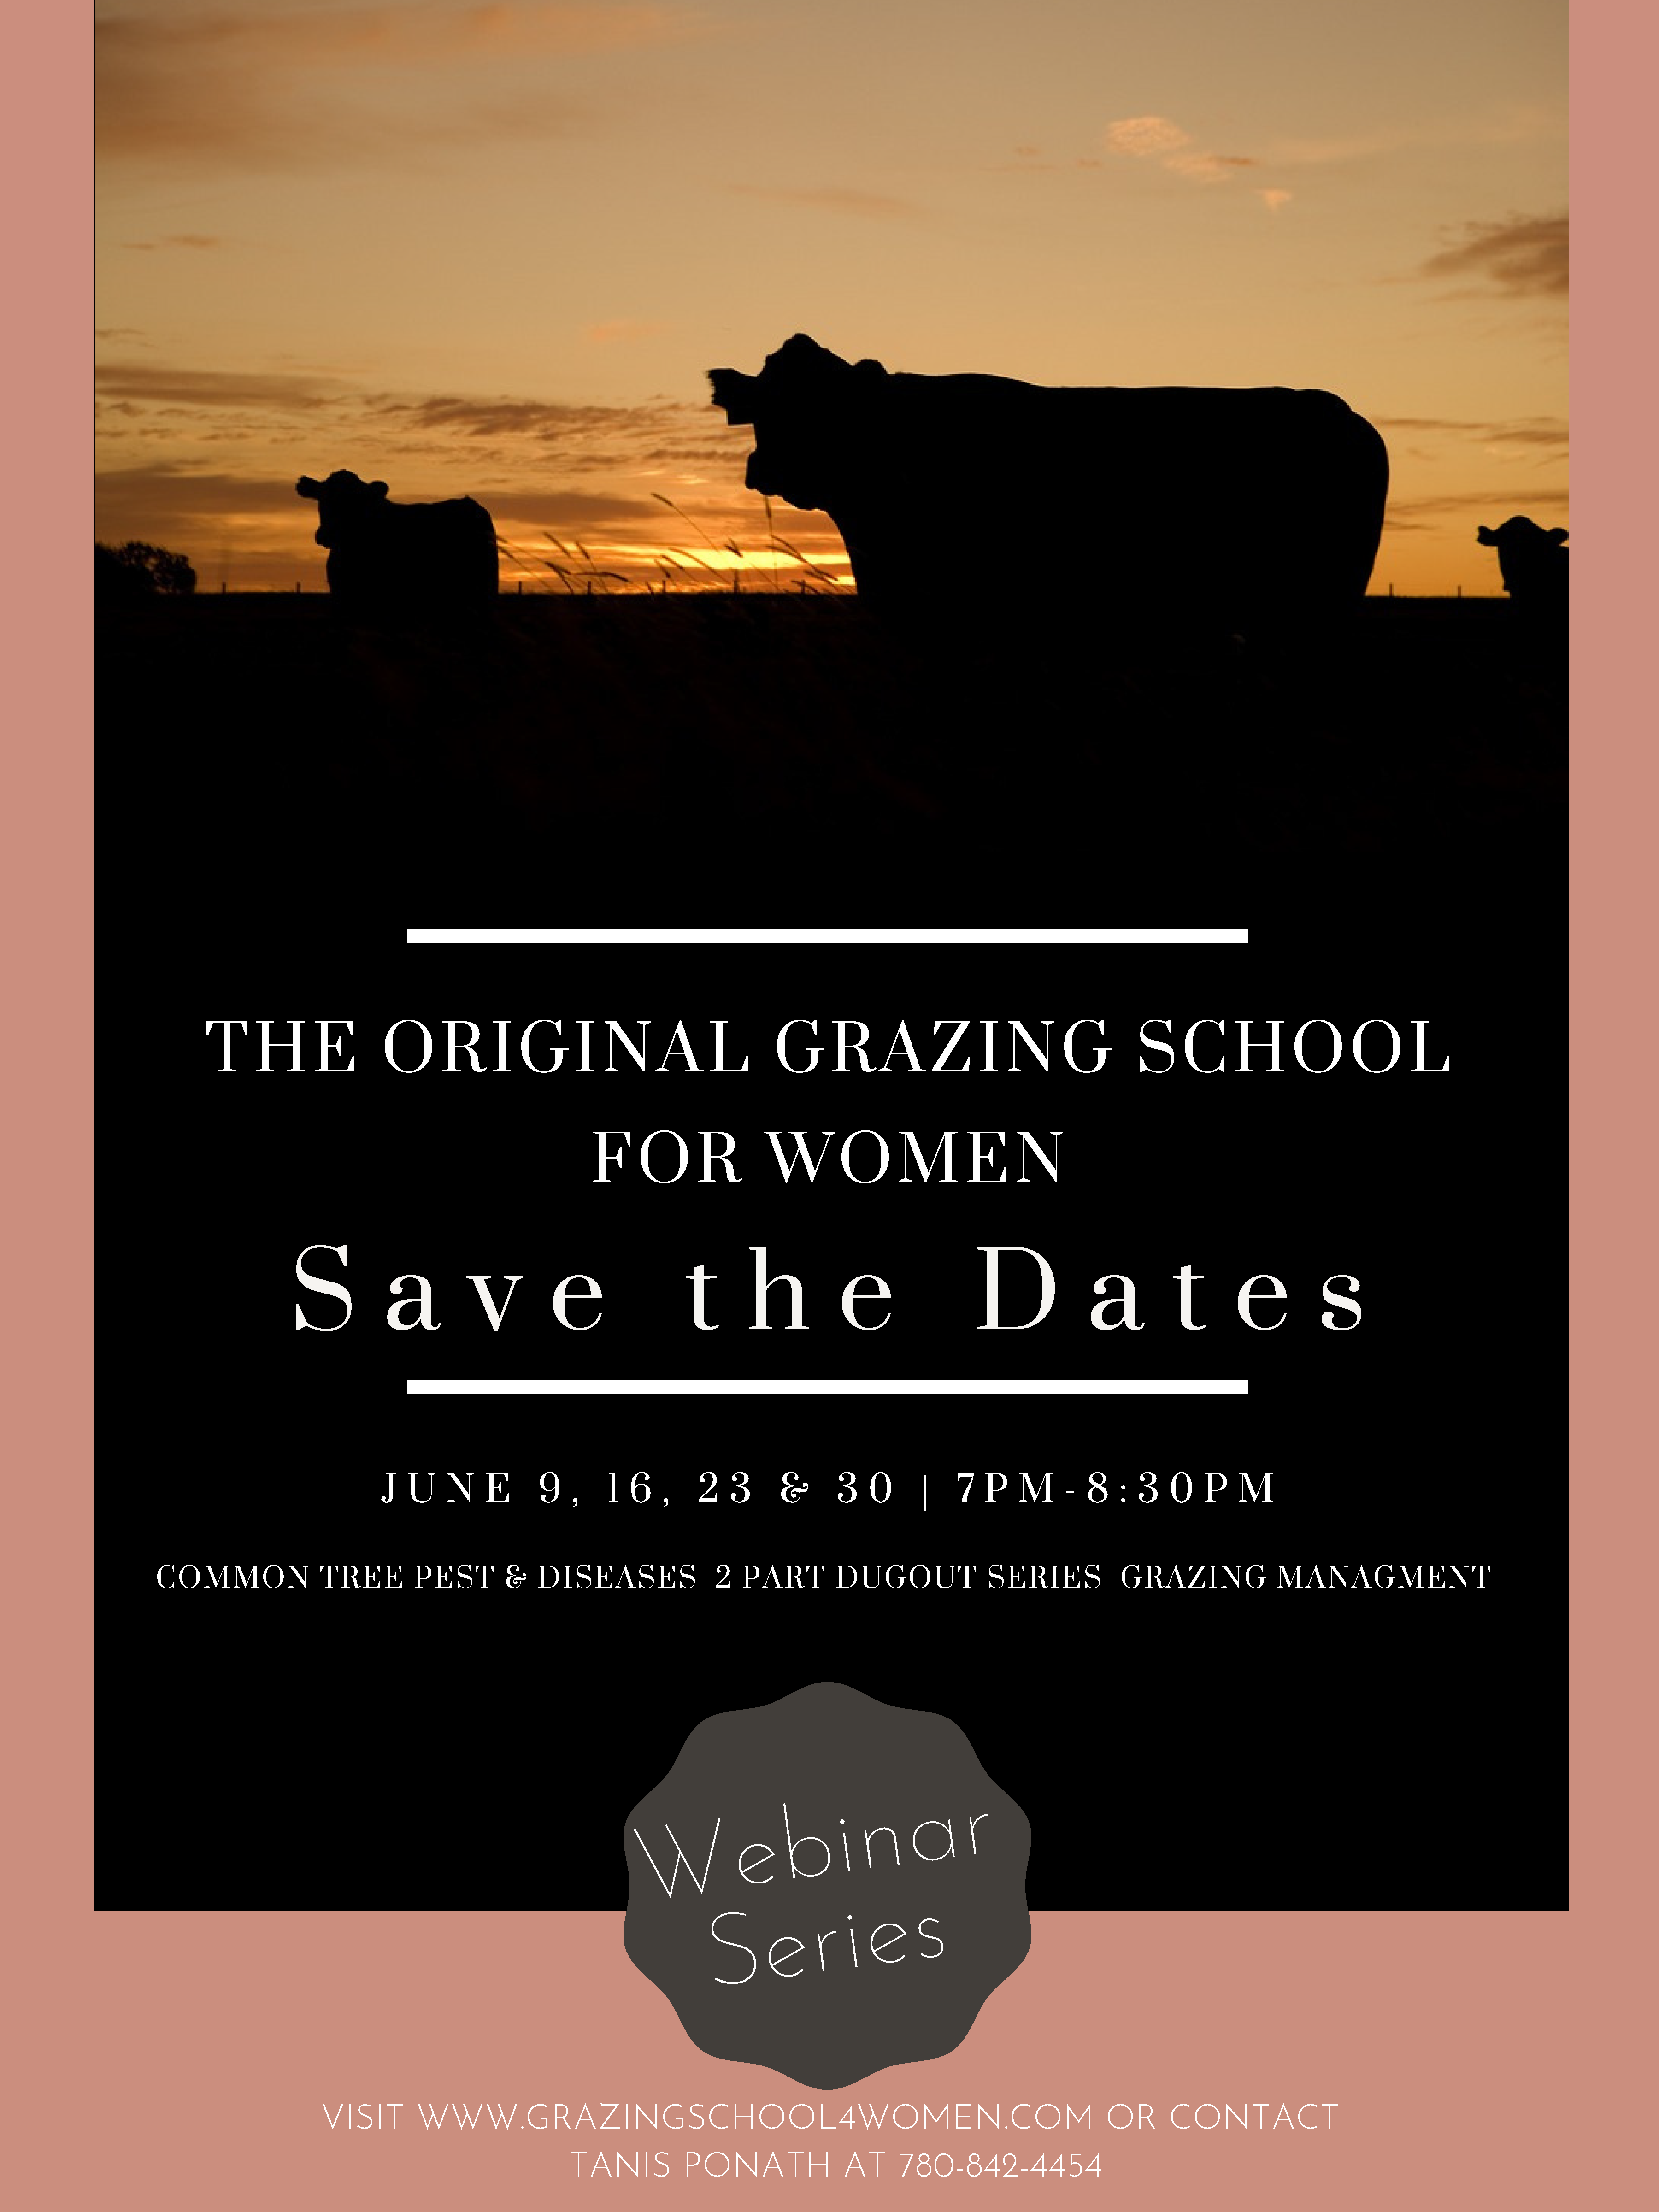 The Original Grazing School for Women - Save the Dates